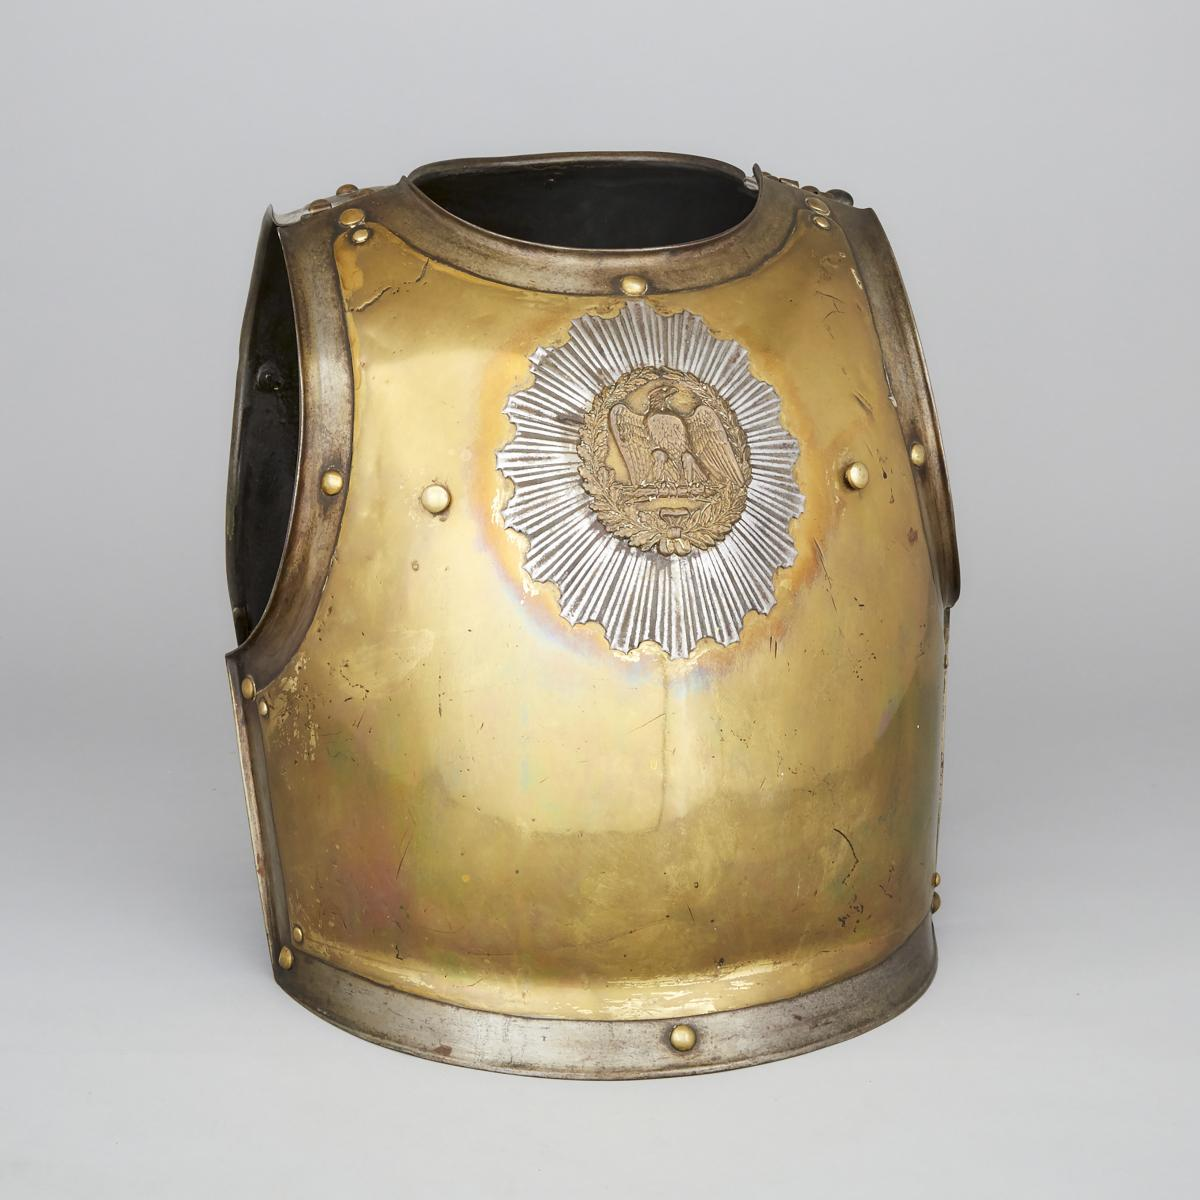 French Carabinier-a-Cheval Officer's Cuirass, Klingenthal Armory, 1832, height 17.5 in — 44.5 cm (2